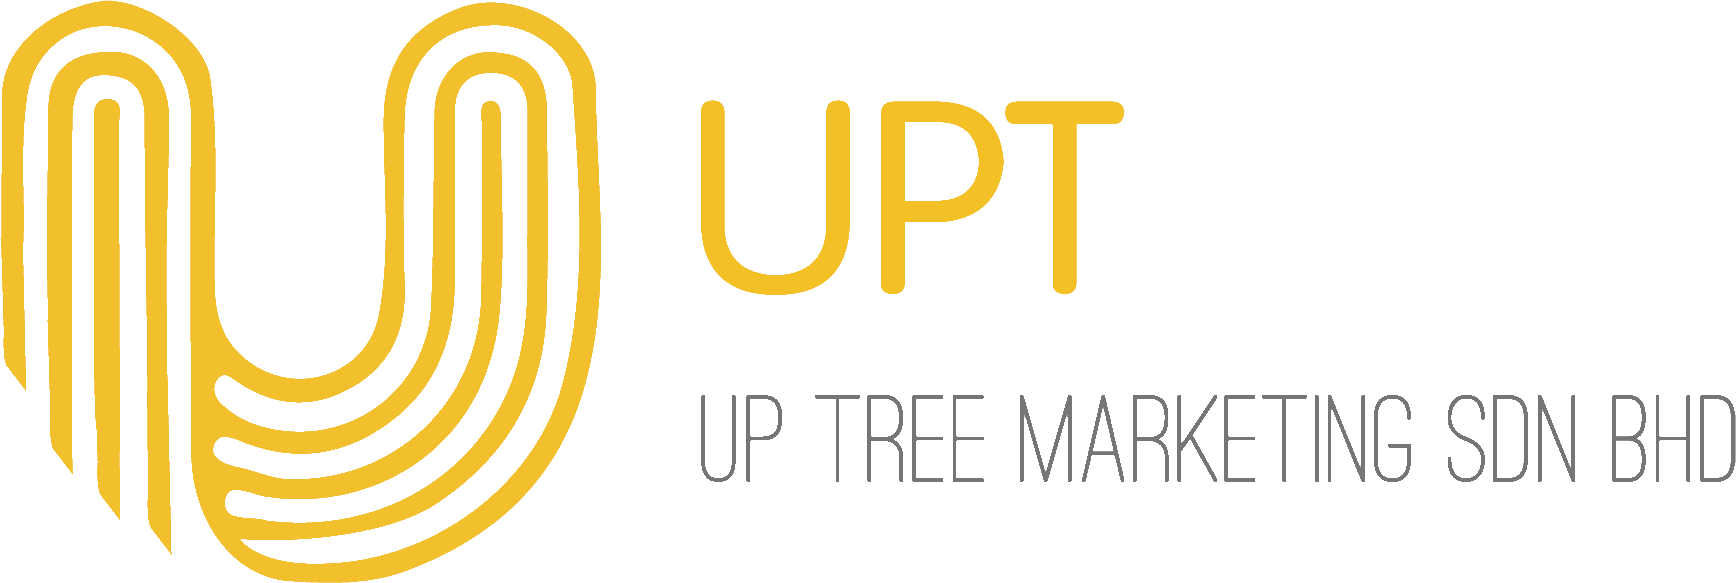 Up Tree Marketing Sdn Bhd logo transparent black text png.